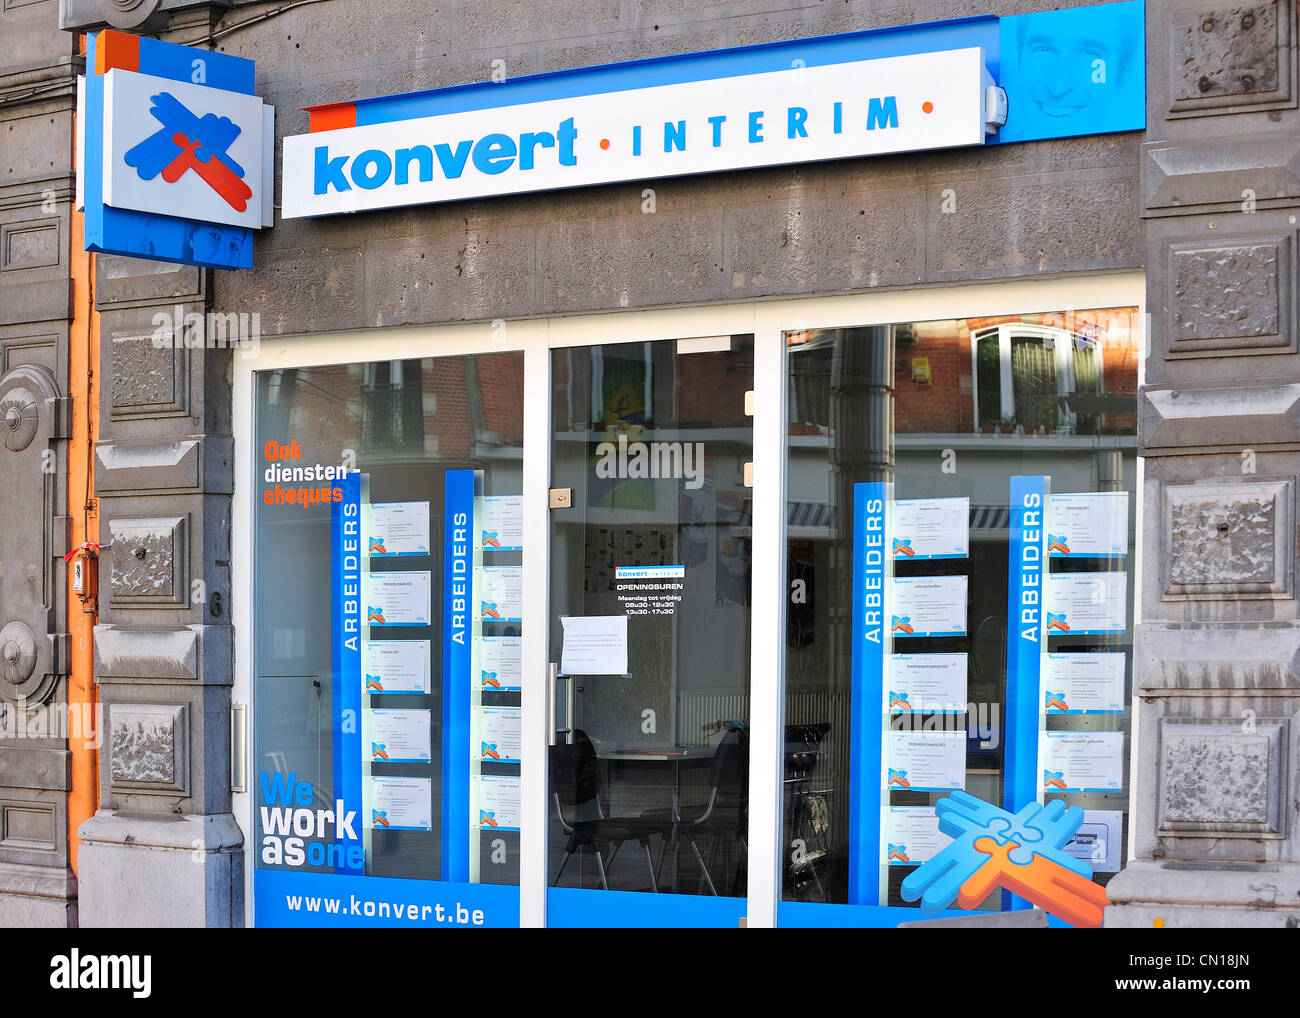 Signboard with logo for temporary employment agency Konvert Interim, Flanders, Belgium - Stock Image